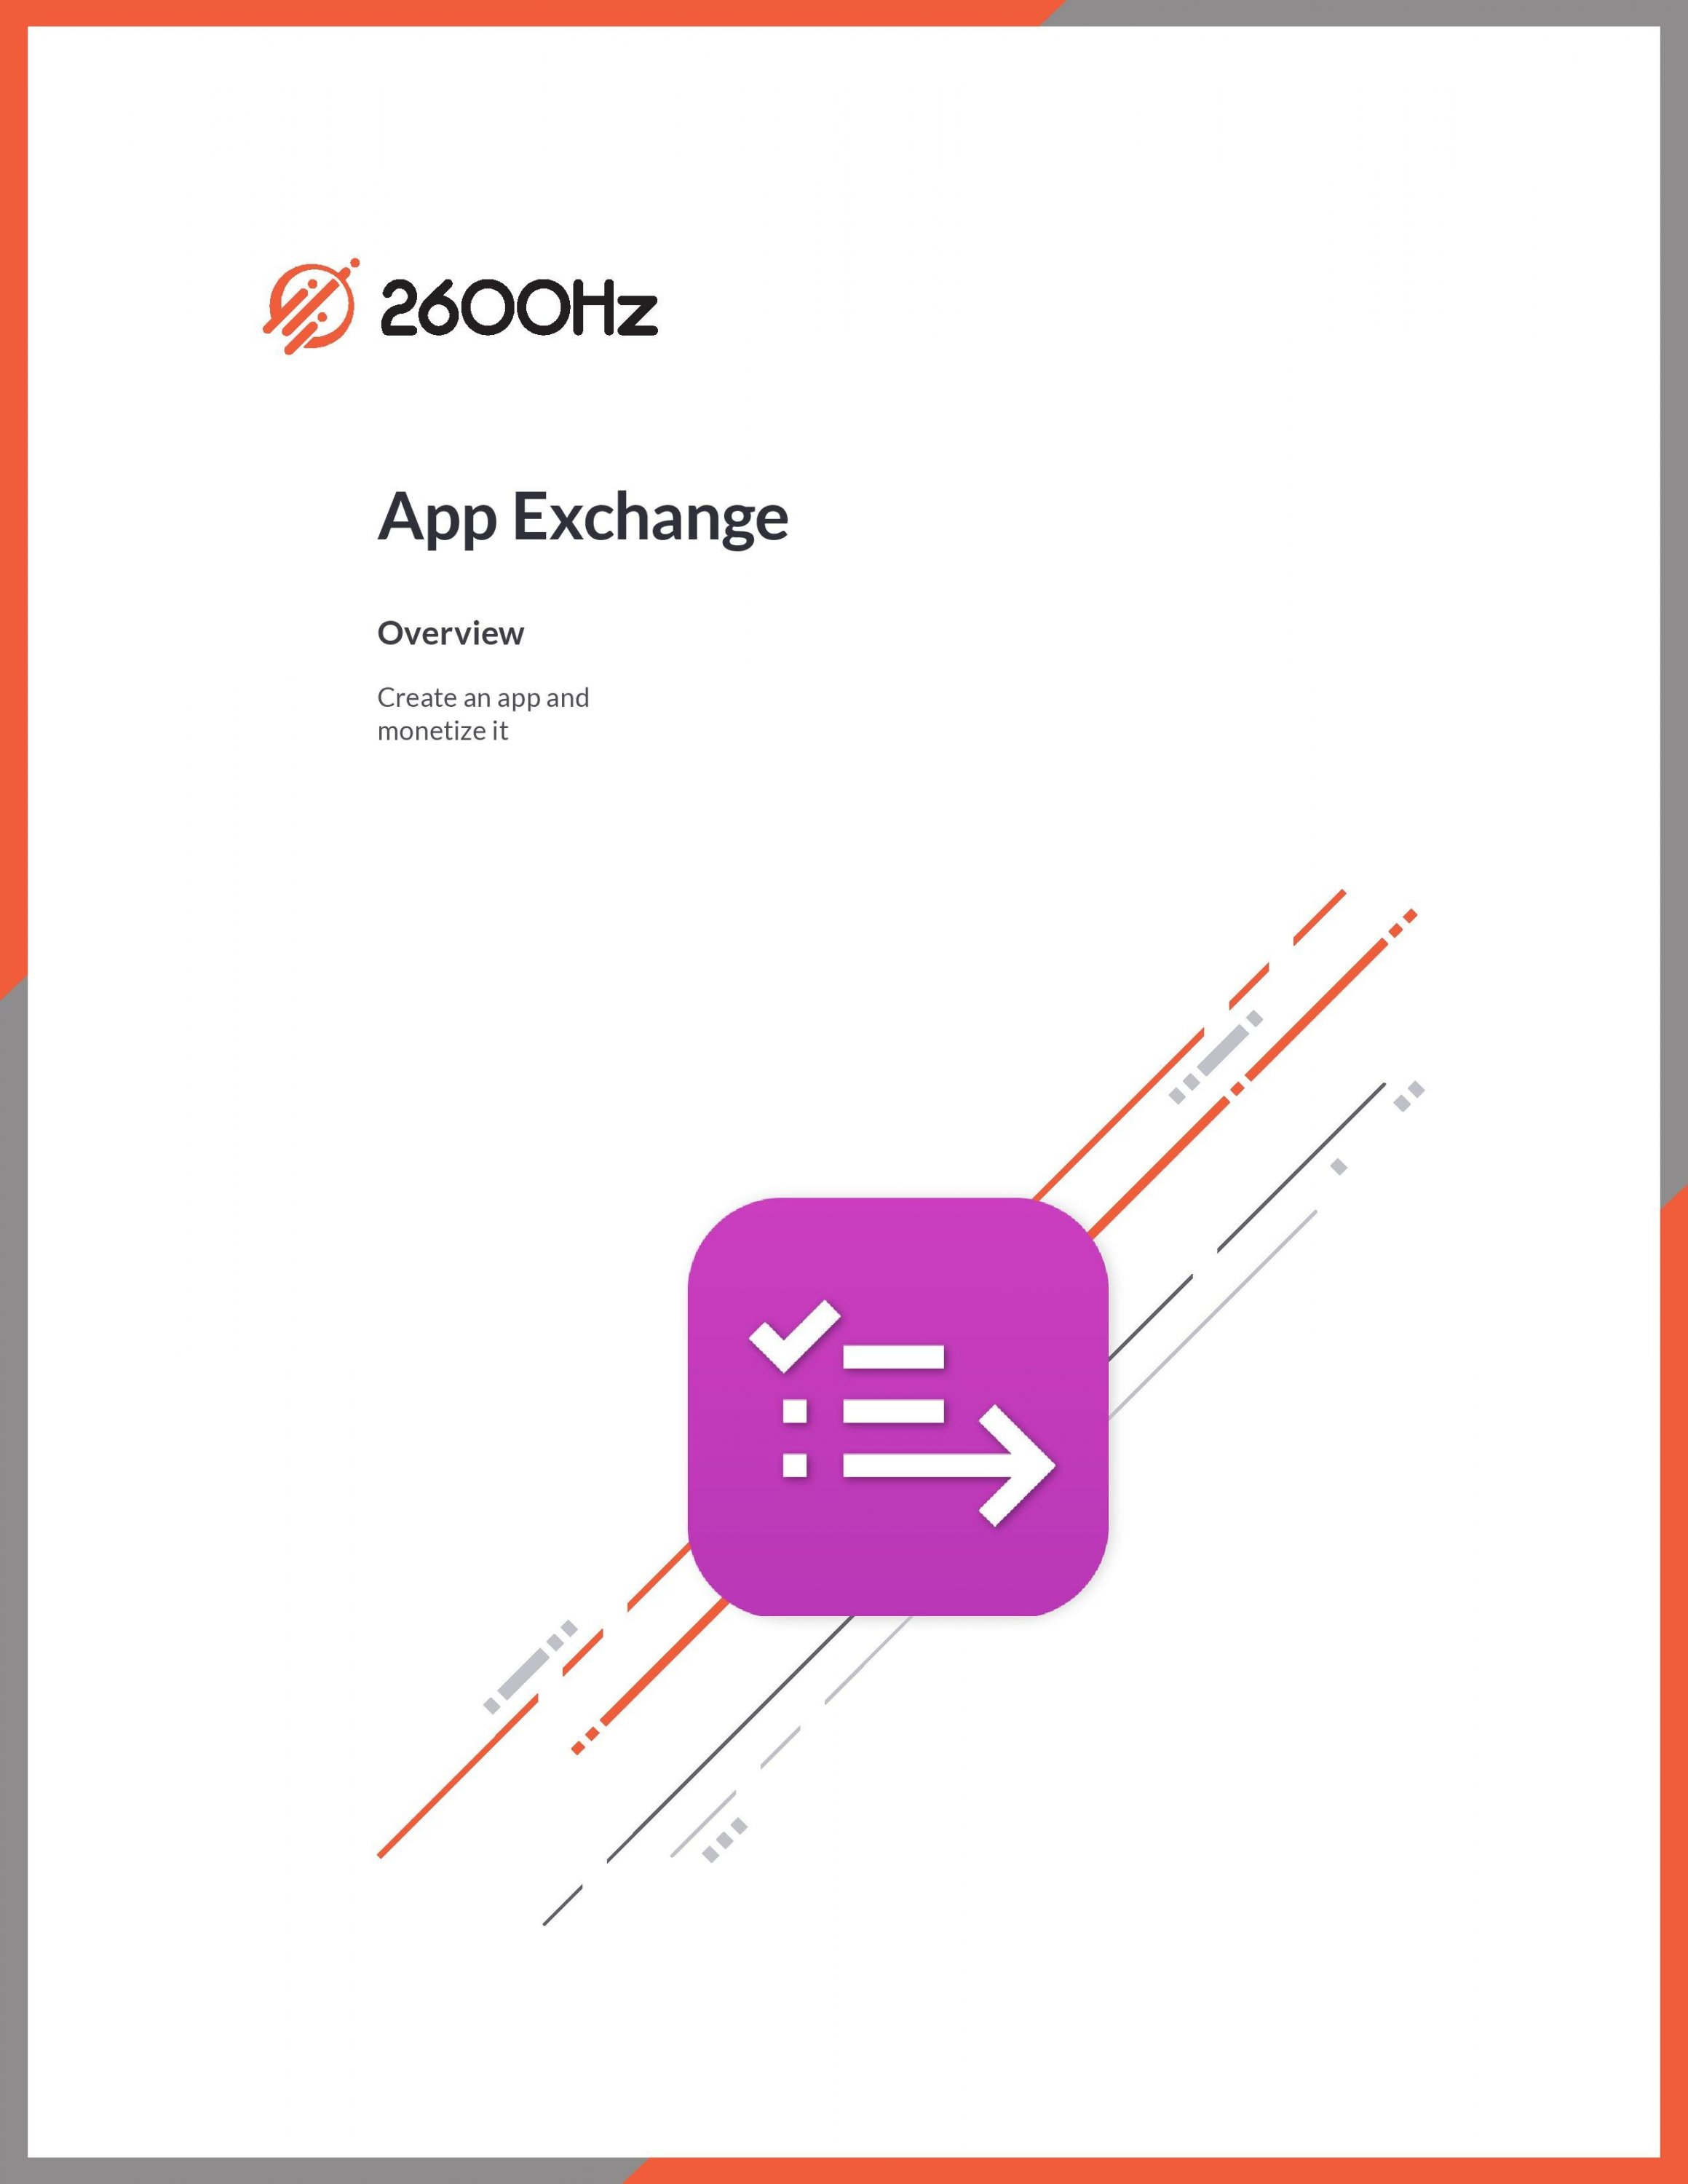 2600Hz-App-Exchange-Overview_17Dec19-page-001.jpg